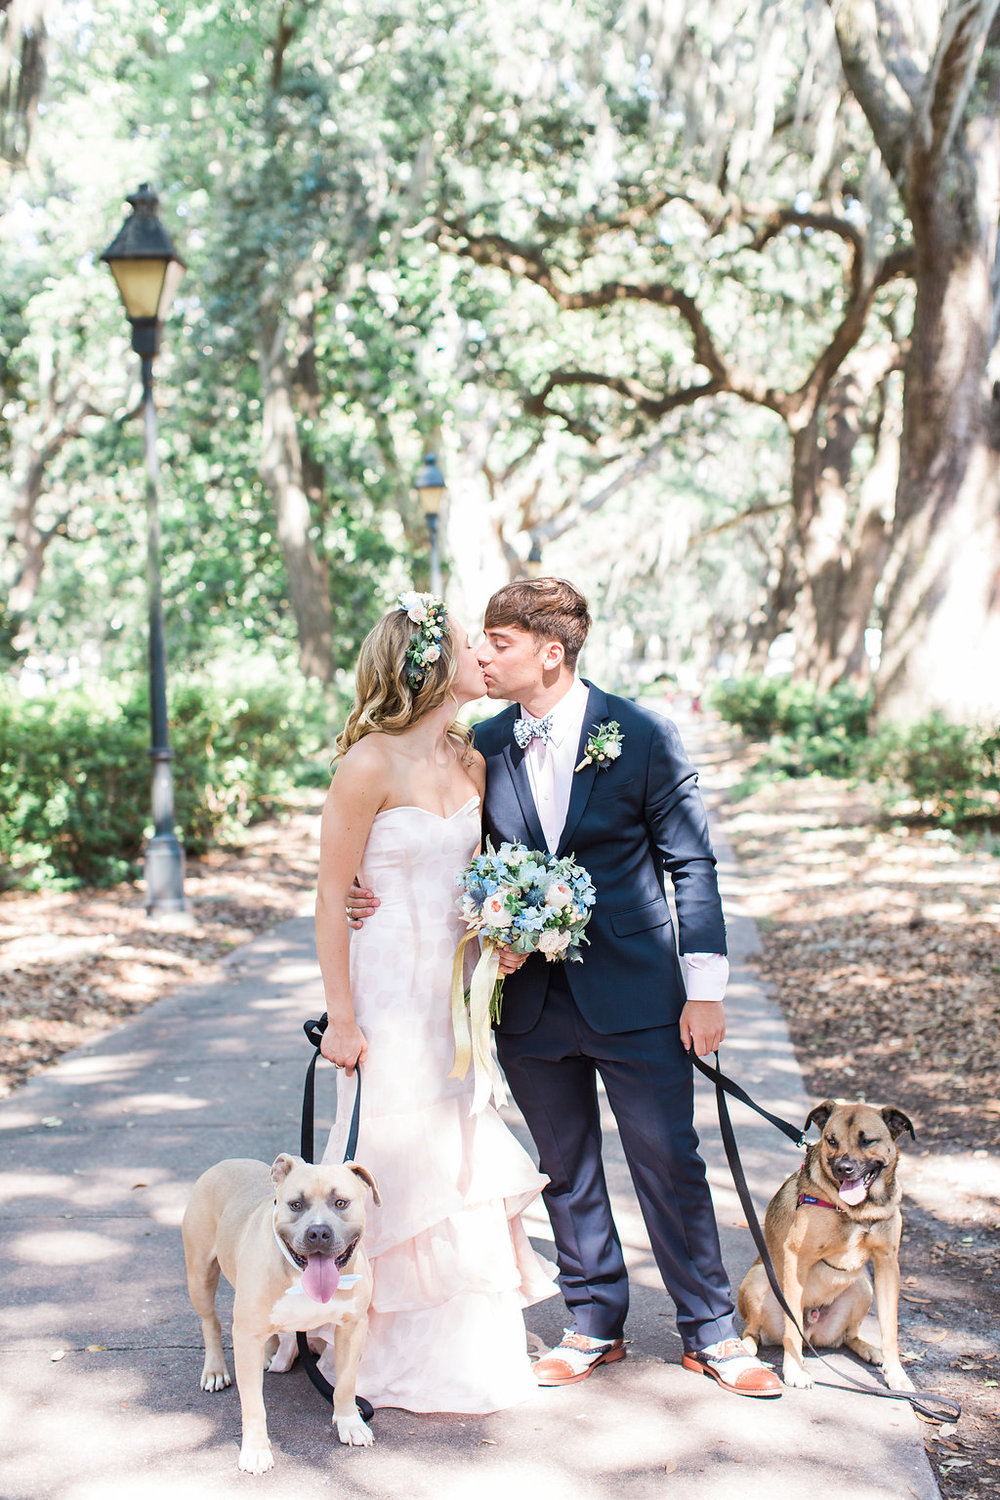 EVE'S PLAYFUL PINK POLKA DOT & HARRY POTTER WEDDING WITH PUPS